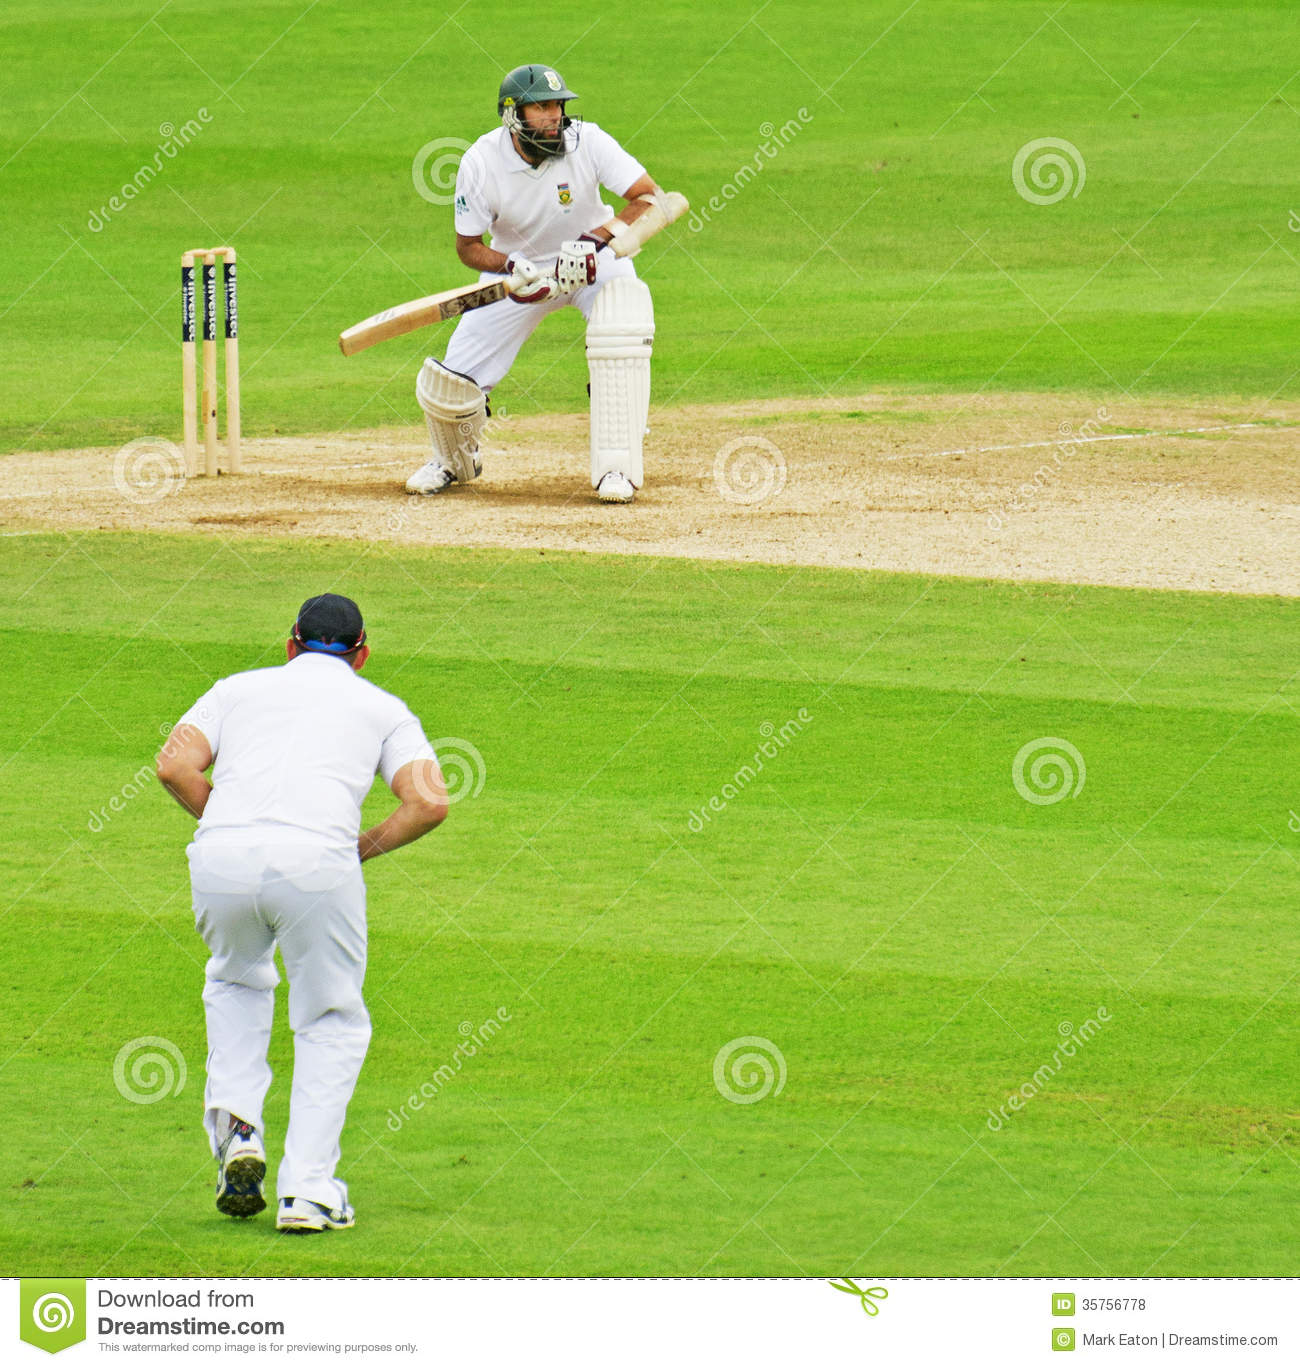 how to watch cricket ball during batting